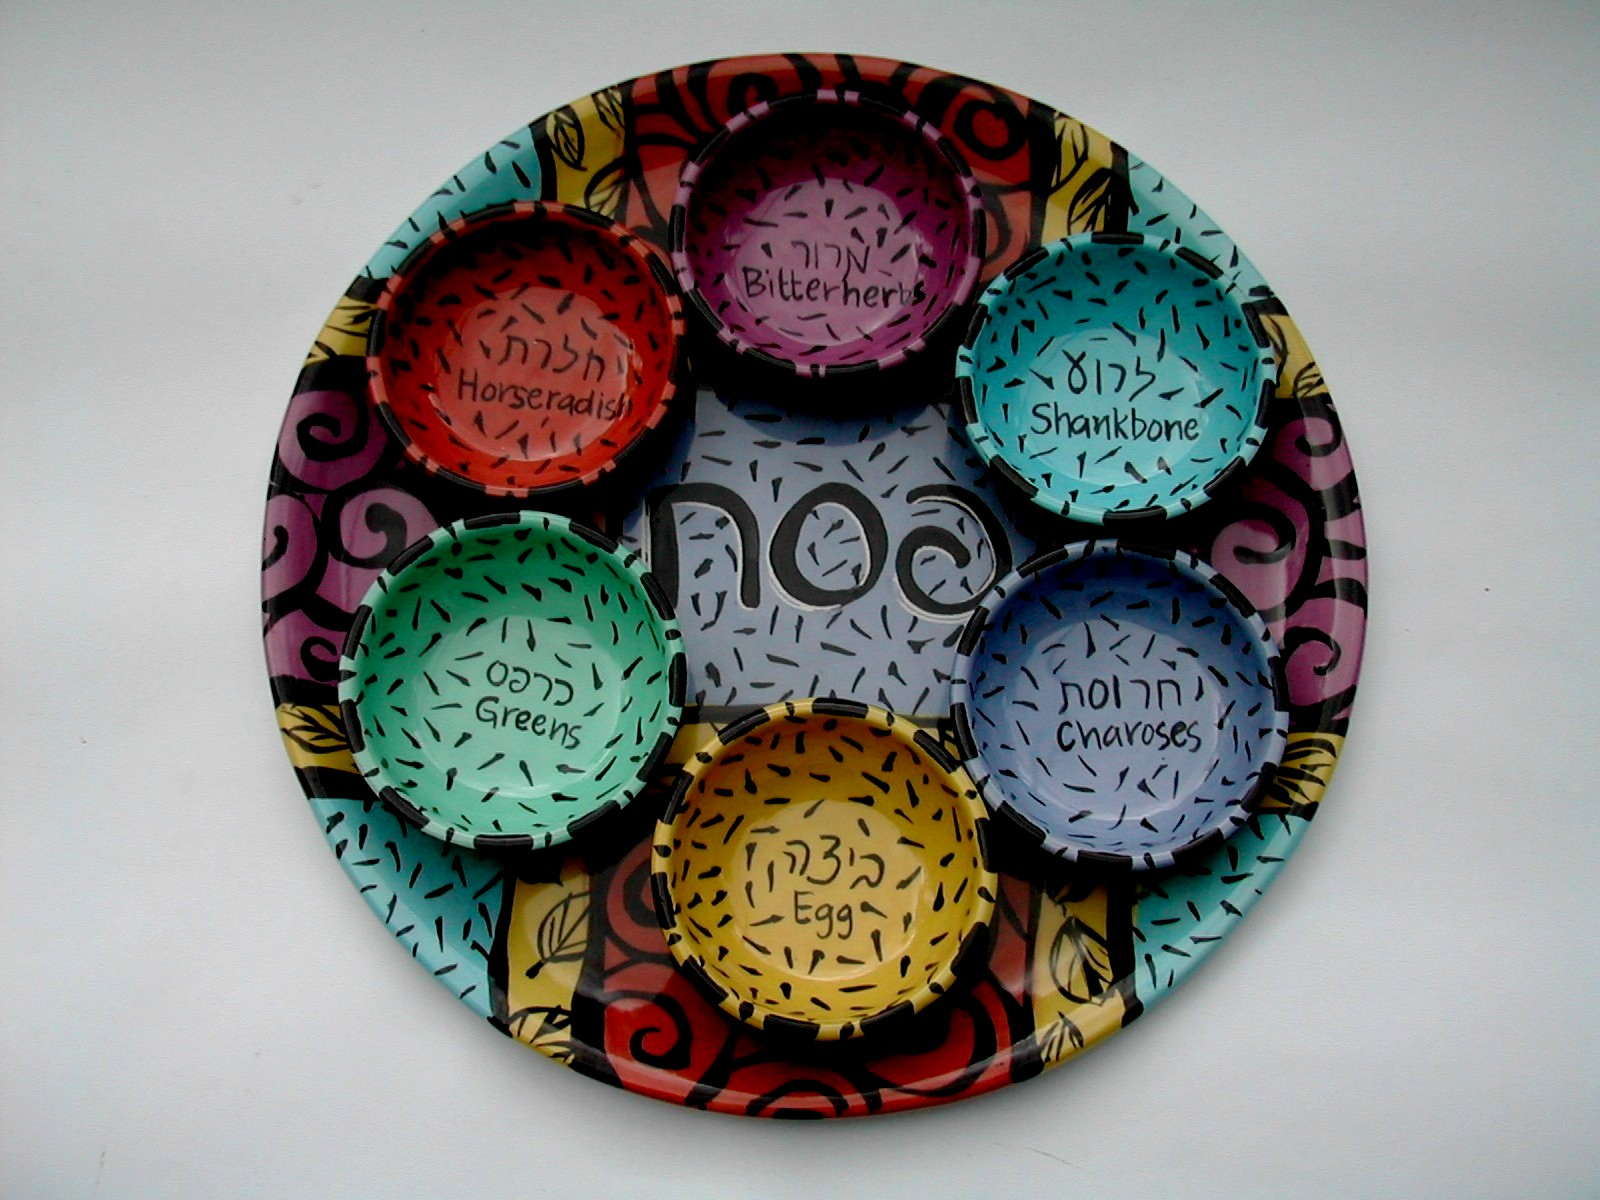 Pesach plate